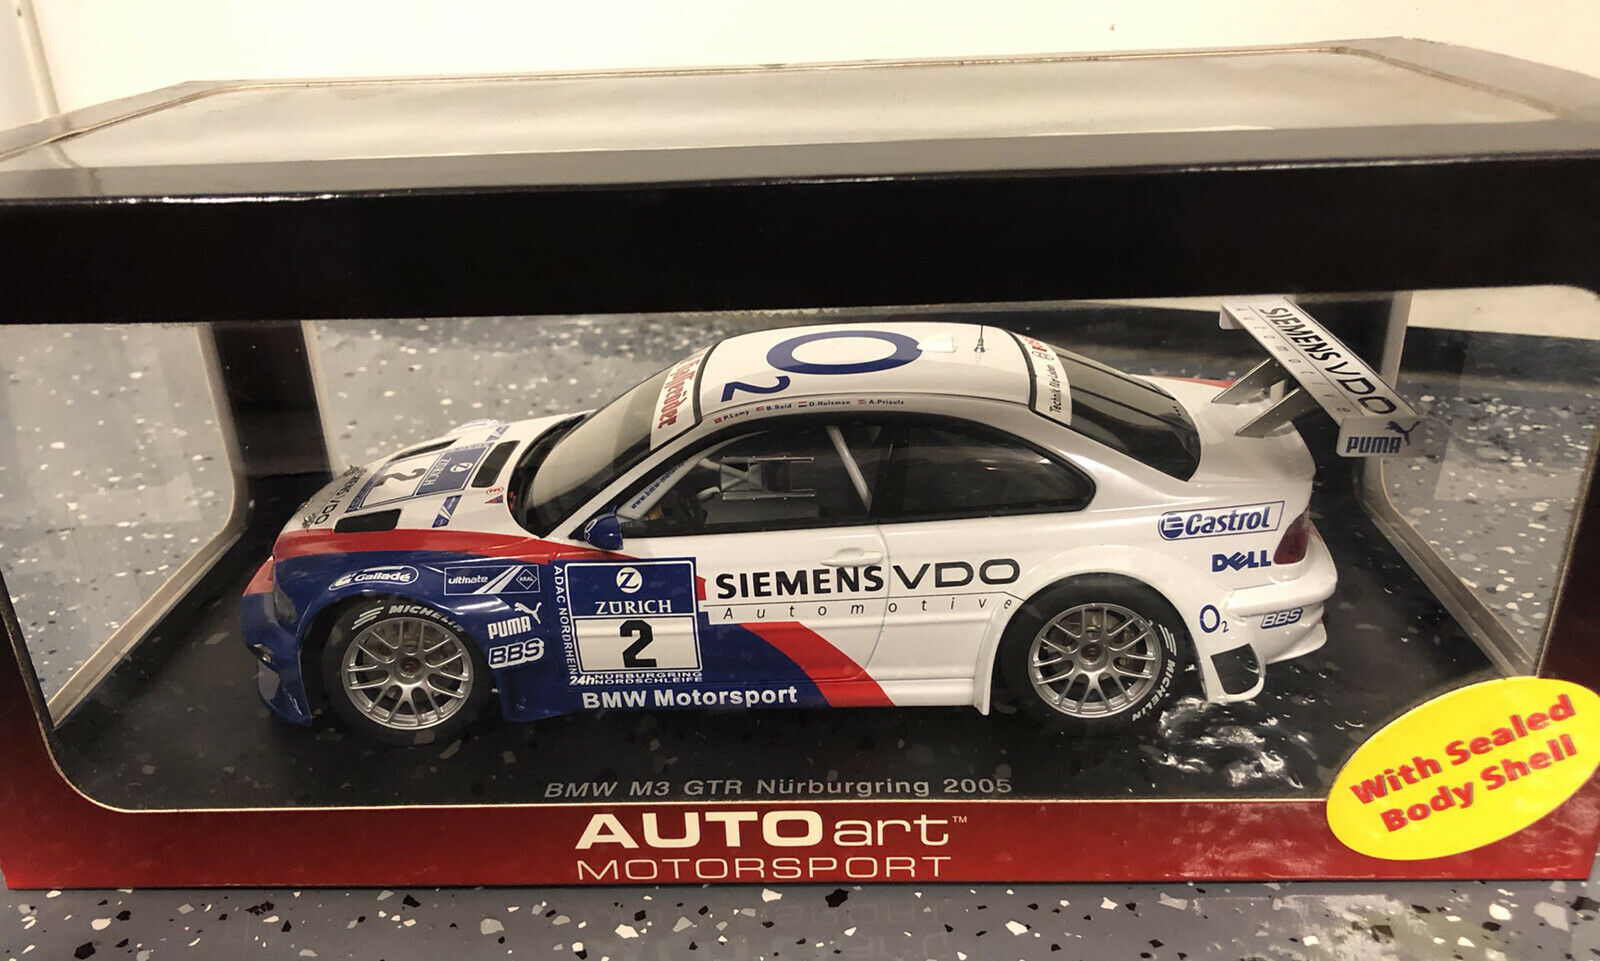 Autoart 13634 Bmw M3 Gtr 2 24 Hrs Nurburgring 2005 Slot Car 1 32 For Sale Online Ebay